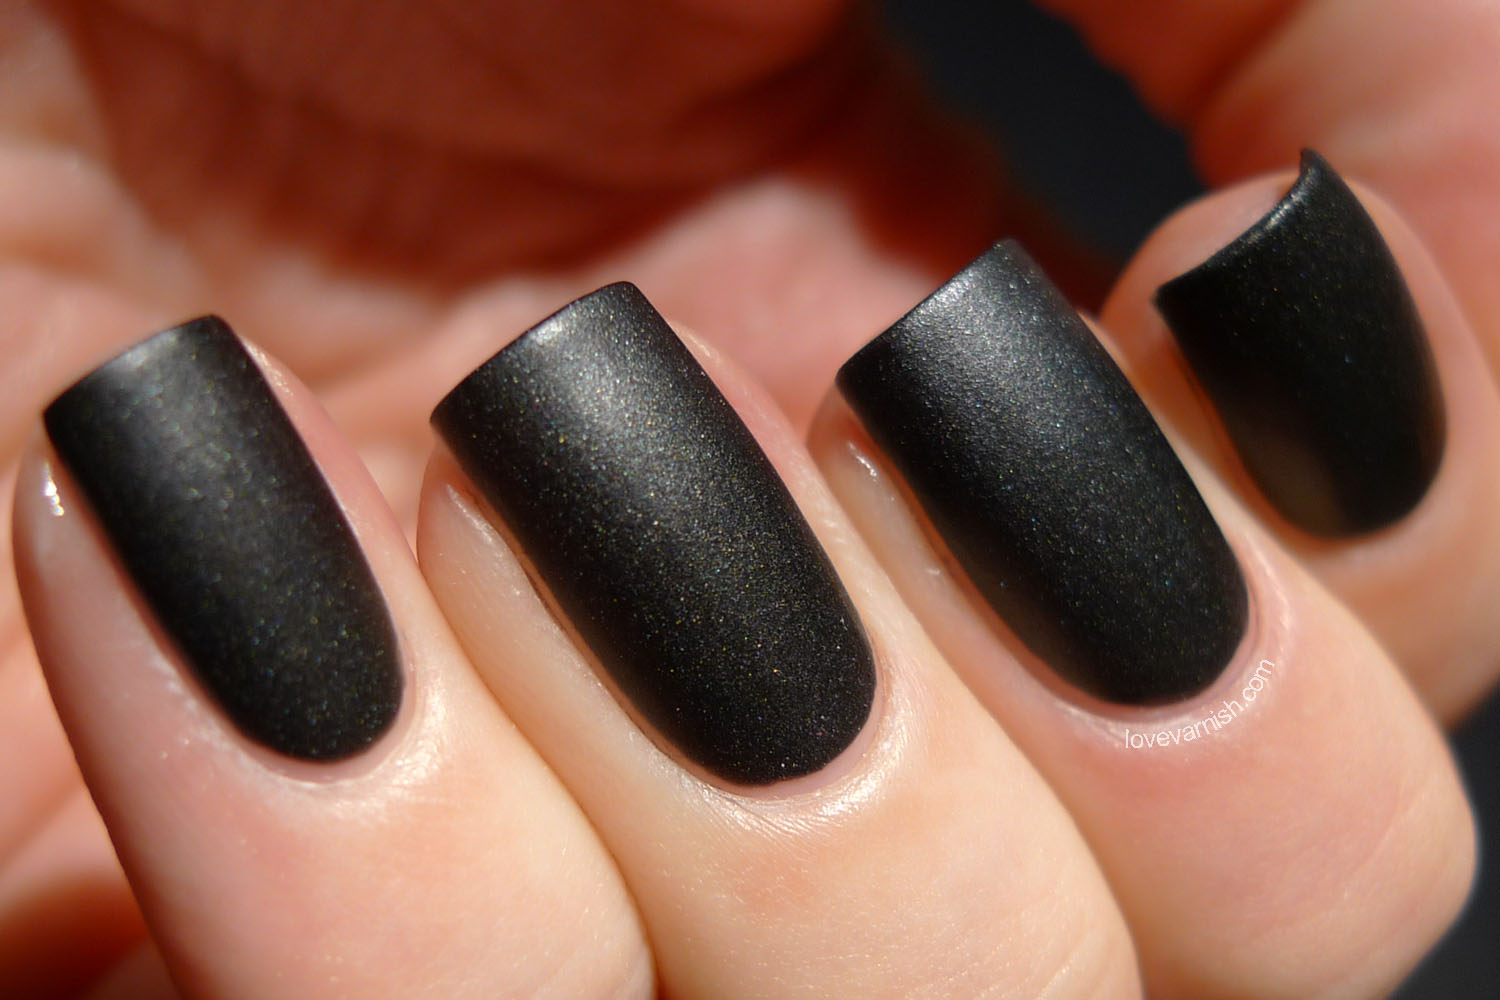 OPI 4 In The Morning black satin finish Gwen Stefani collection